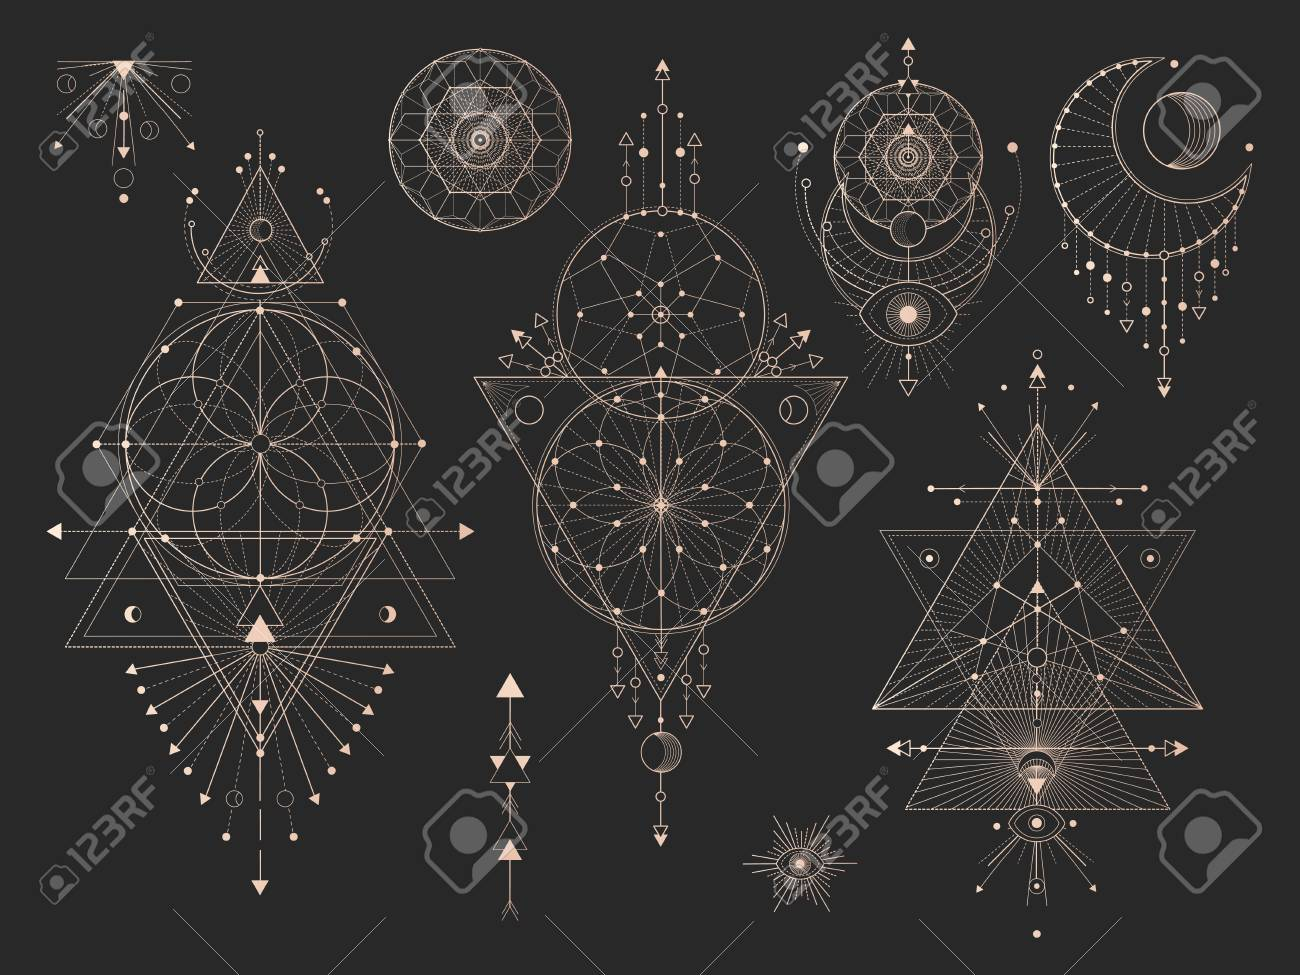 Vector set of Sacred geometric symbols with moon, eye, arrows, dreamcatcher and figures on black background. Gold abstract mystic signs collection drawn in lines. For you design: tattoo, print, posters, t-shirts, textiles and magic craft. - 110949507